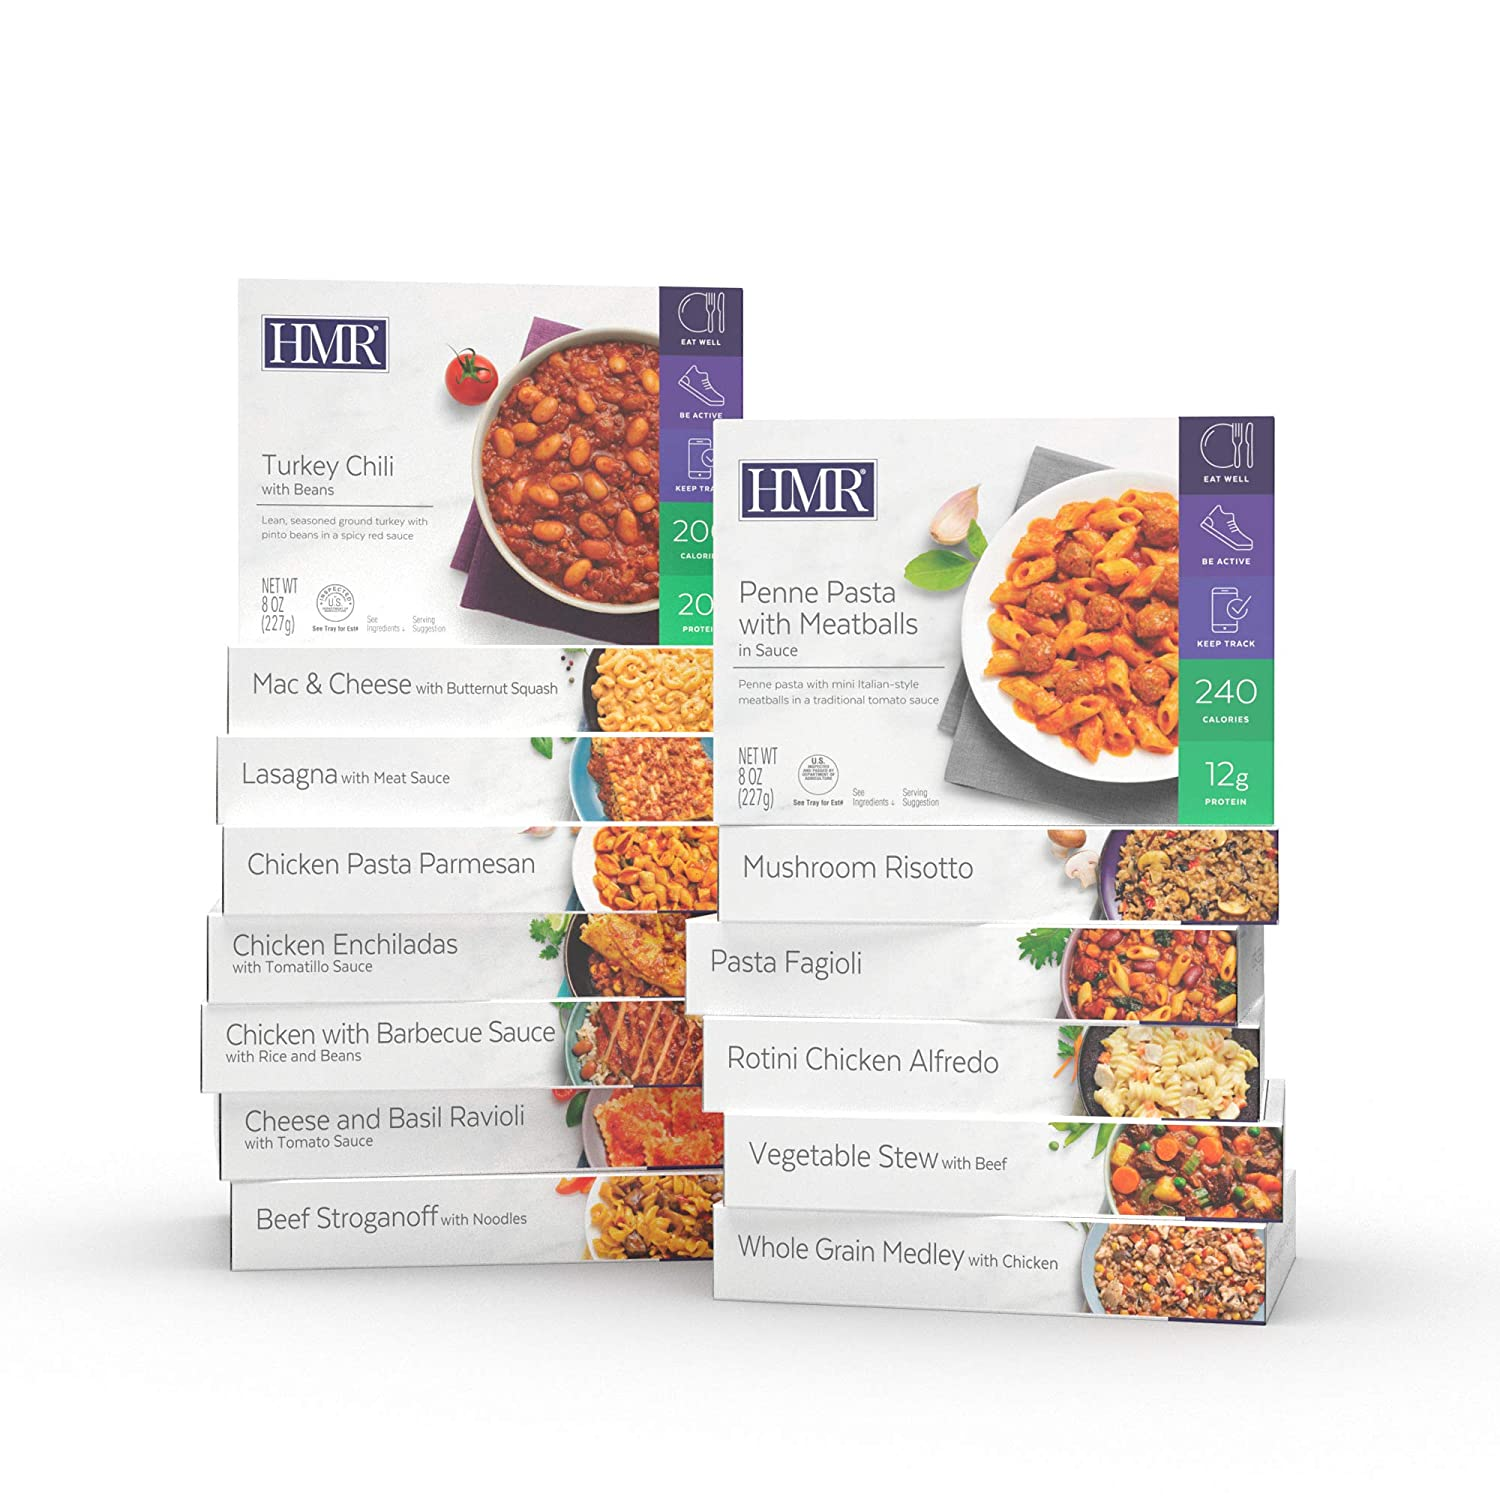 hmr ultimate entree variety pack 14 different meals 7 8oz servings 14 meals